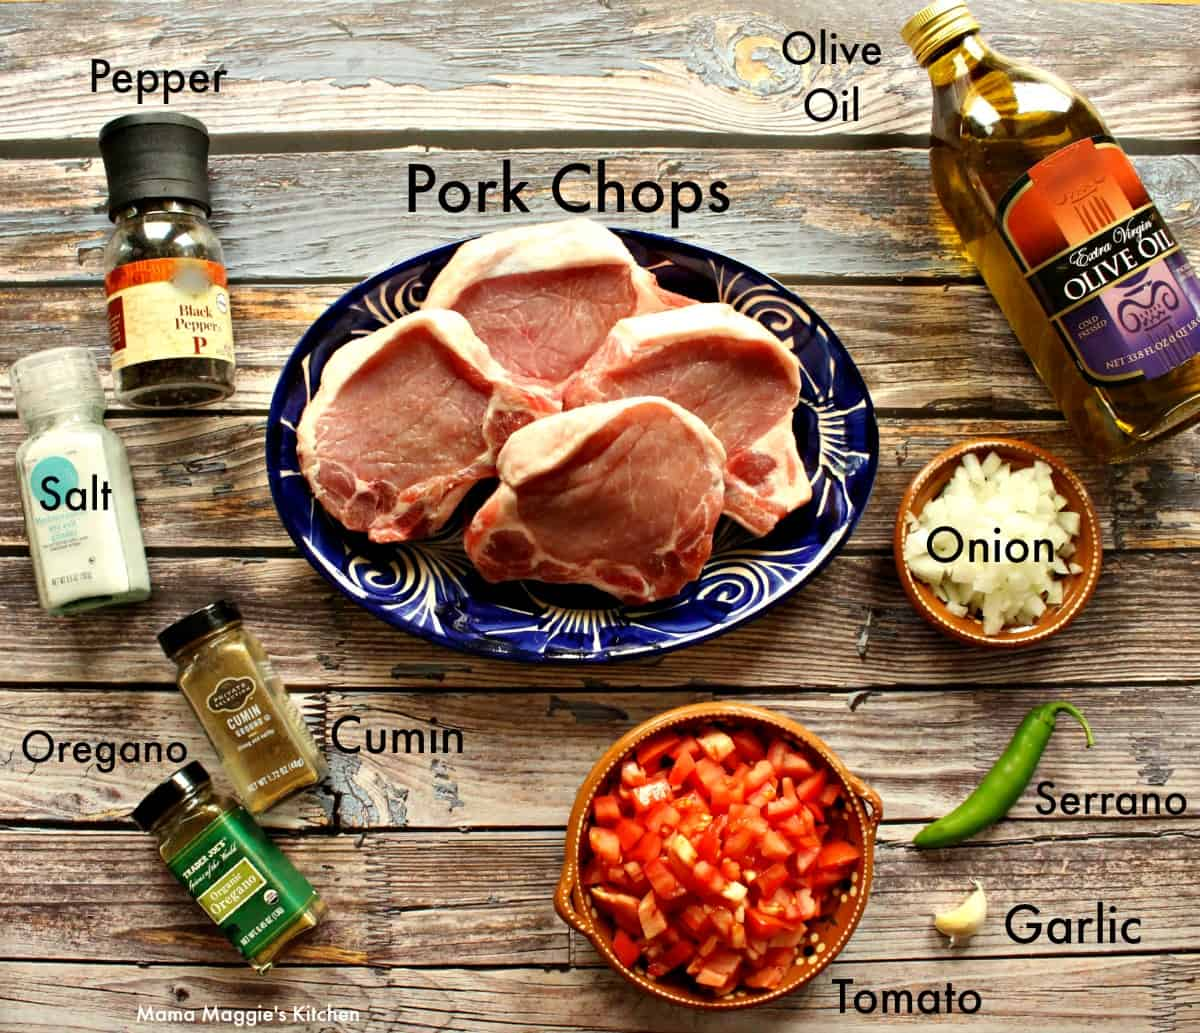 The ingredients necessary to make the pork chops recipe laid out and labeled.